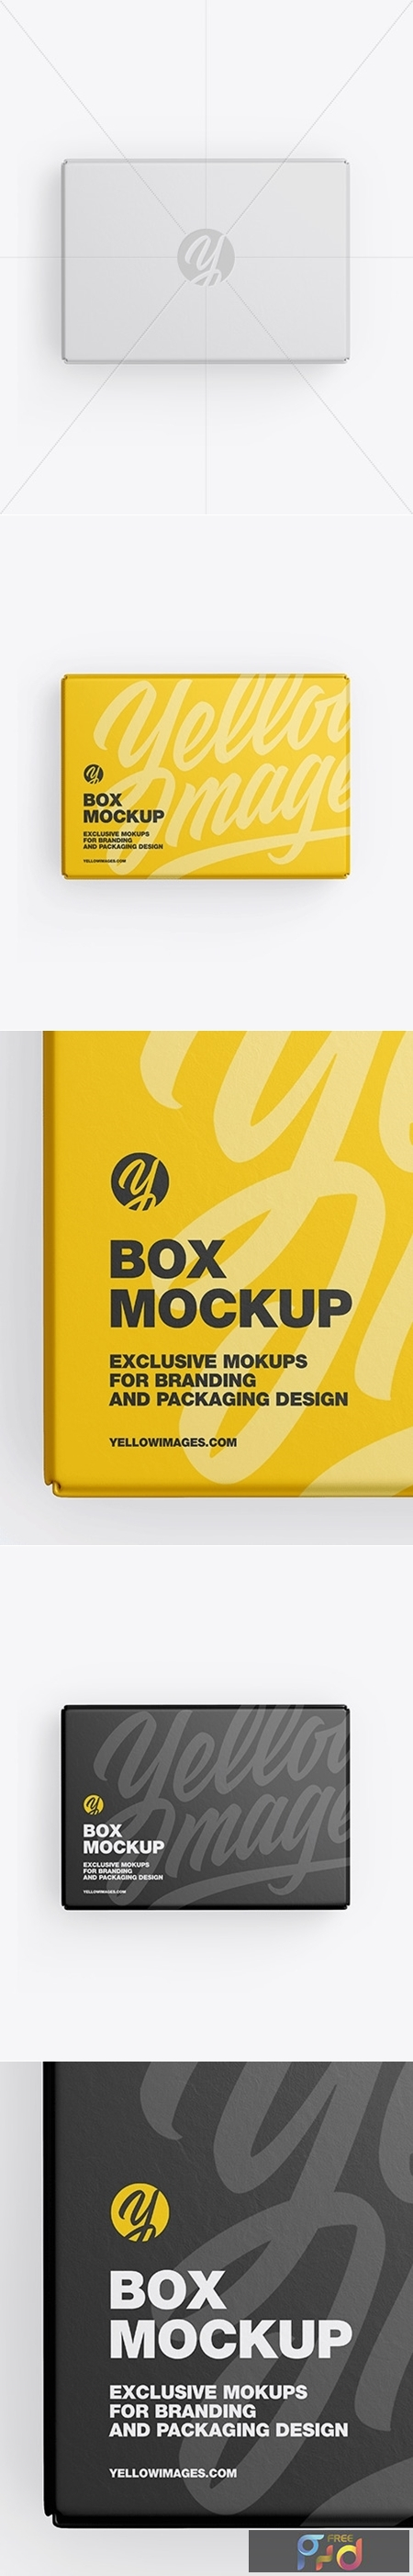 Download Illustrator Food Packaging Design Templates Yellowimages